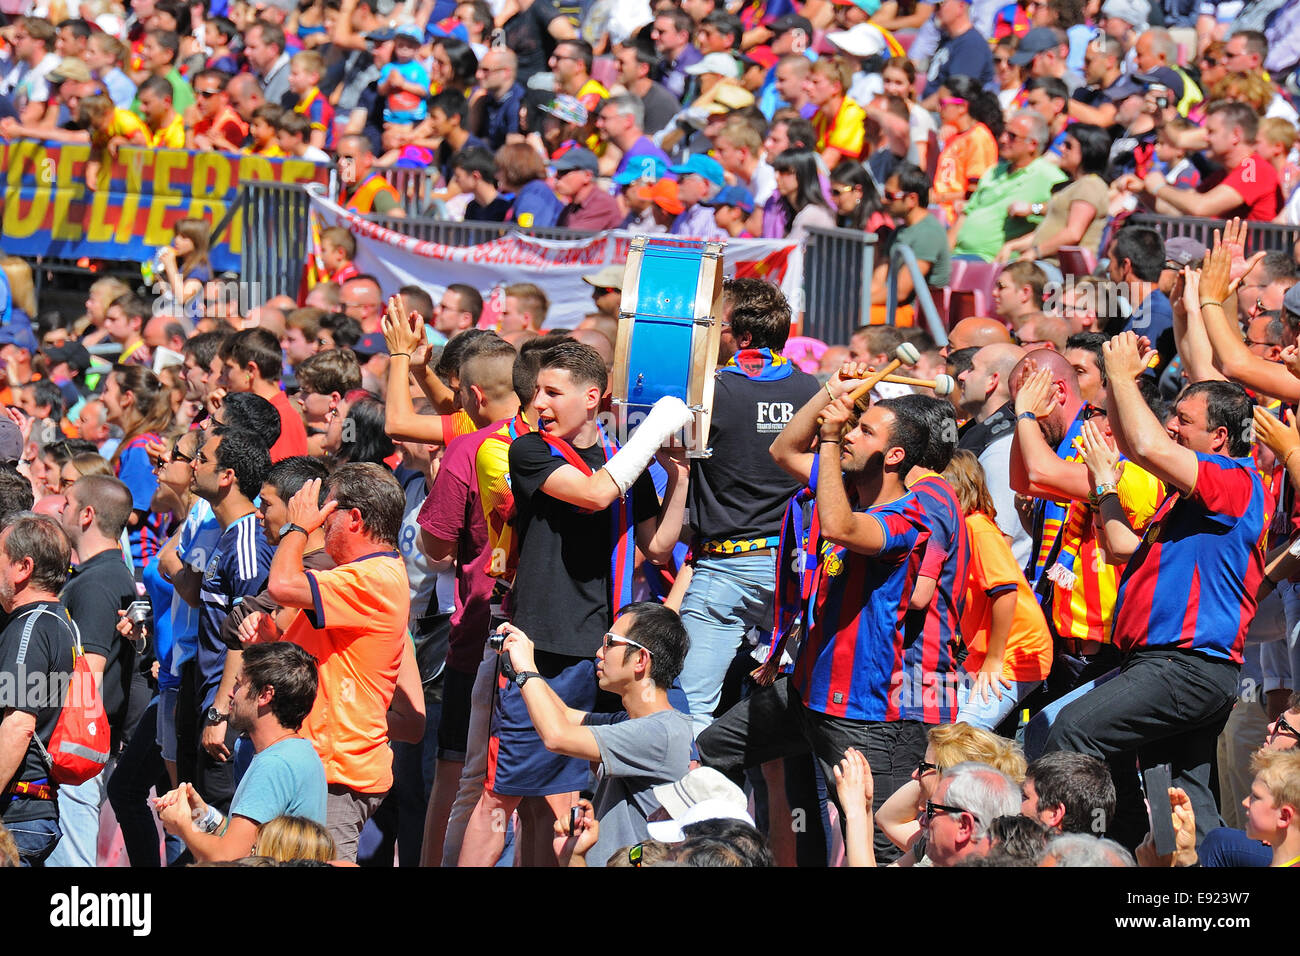 BARCELONA - MAR 26: The Boixos Nois, radical F.C. Barcelona supporters at the Camp Nou on the Spanish League. - Stock Image